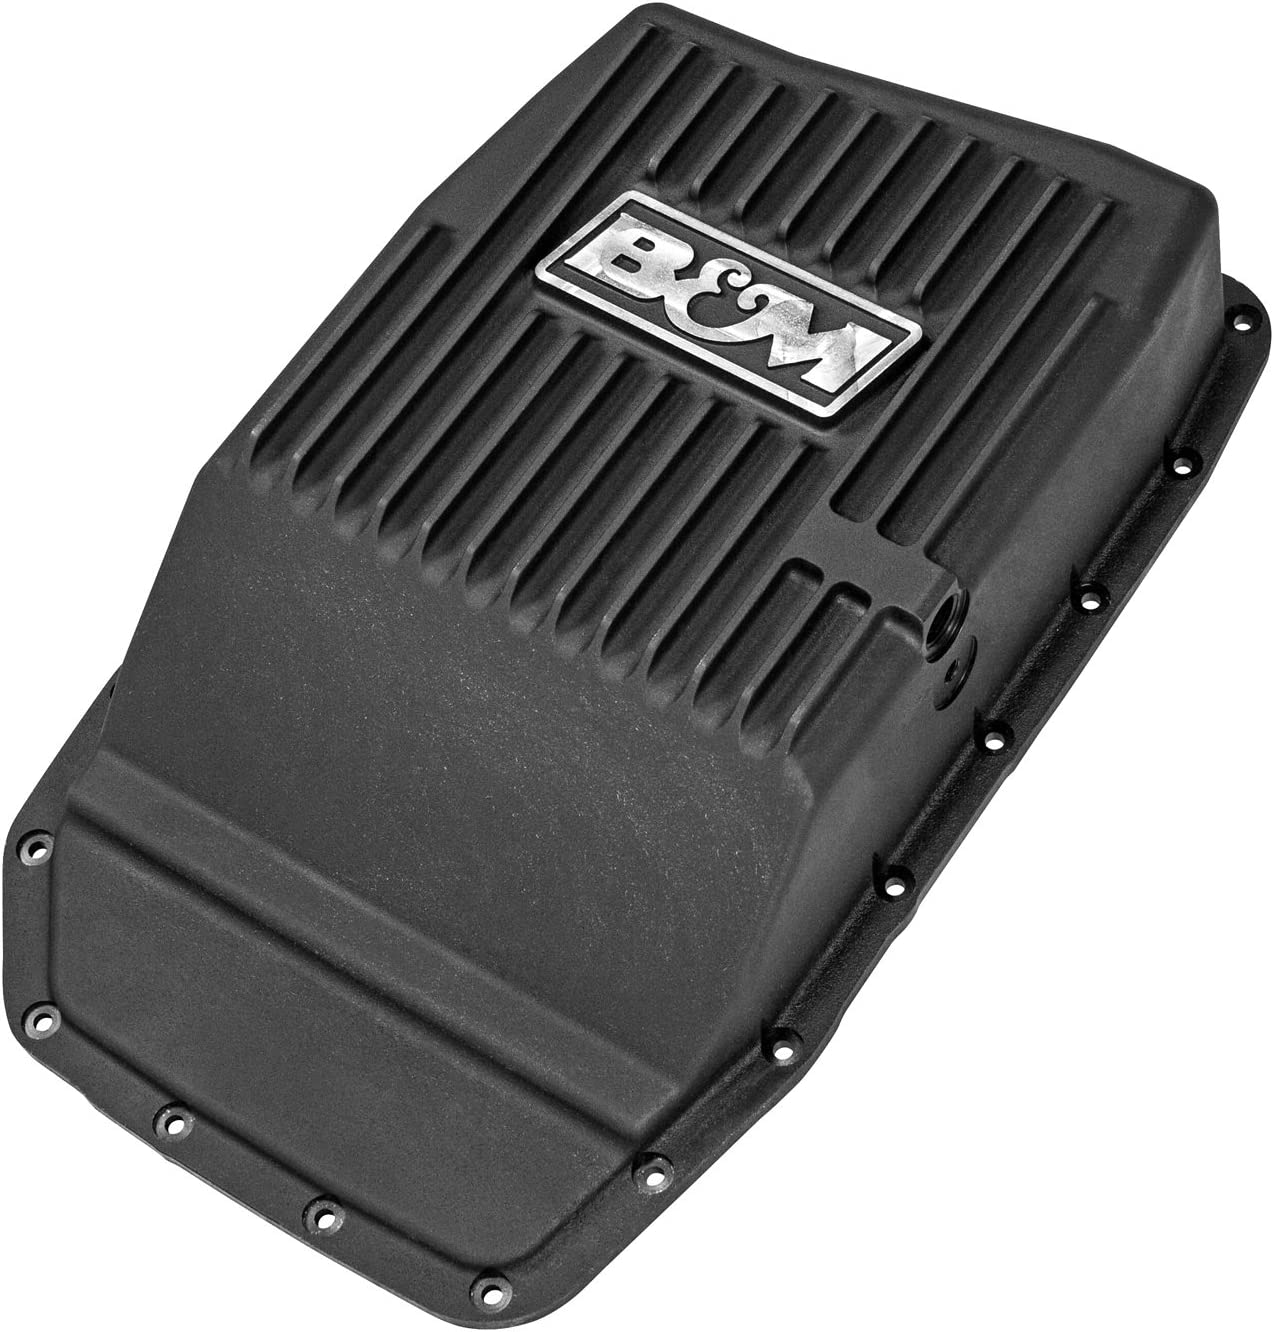 BM 70394 Transmission anodized Popular shop is the lowest At the price of surprise price challenge black Pan